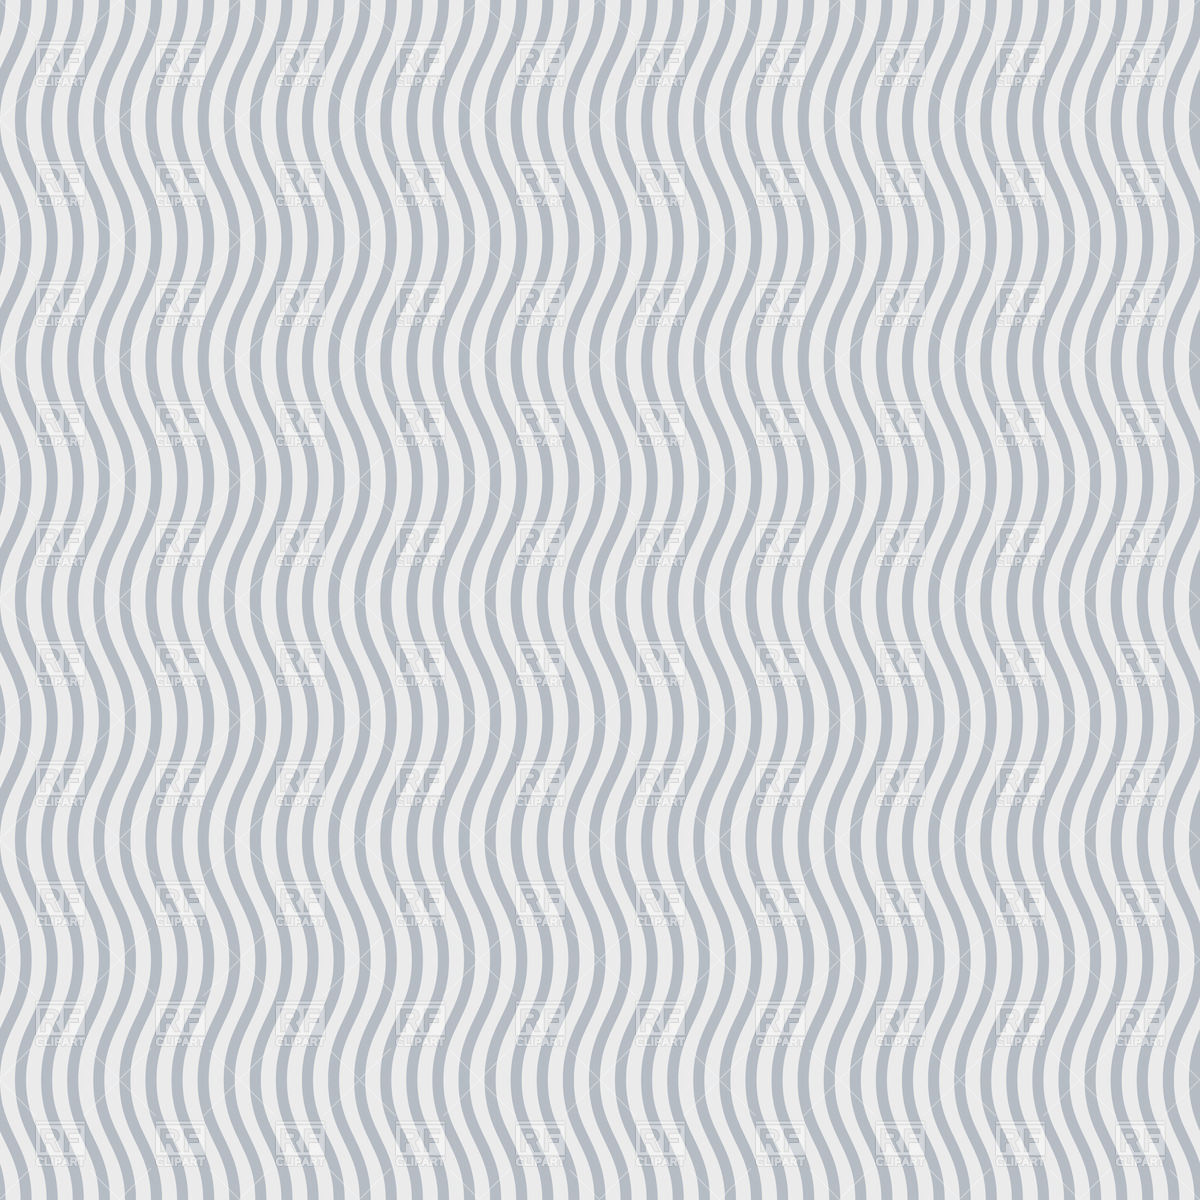 1200x1200 Seamless Wallpaper With Distorted Wavy Lines Vector Image Vector